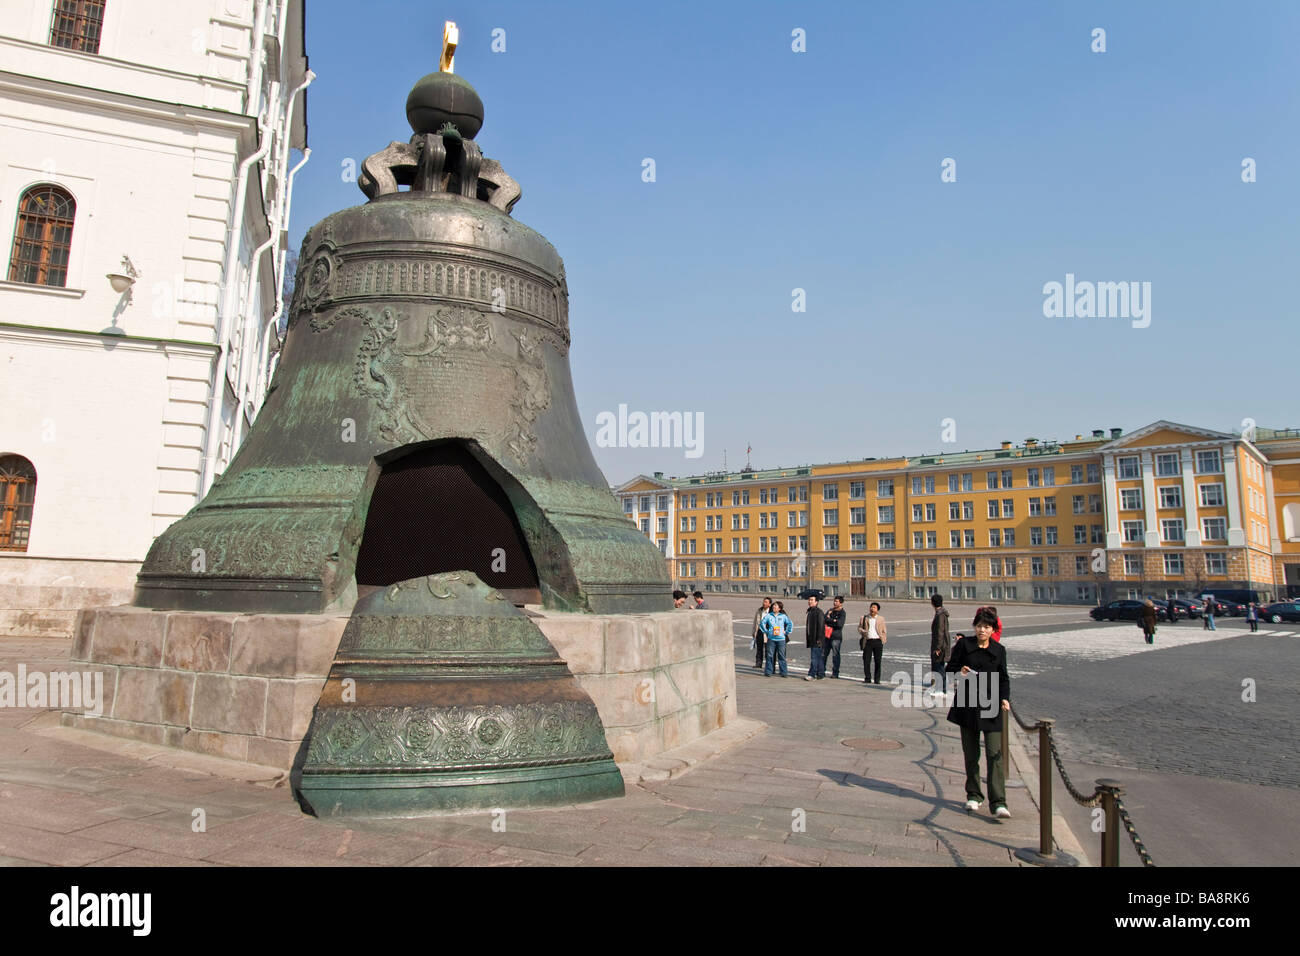 The Great Bell, Tsar's Bell Kremlin Moscow, Russia. Stock Photo